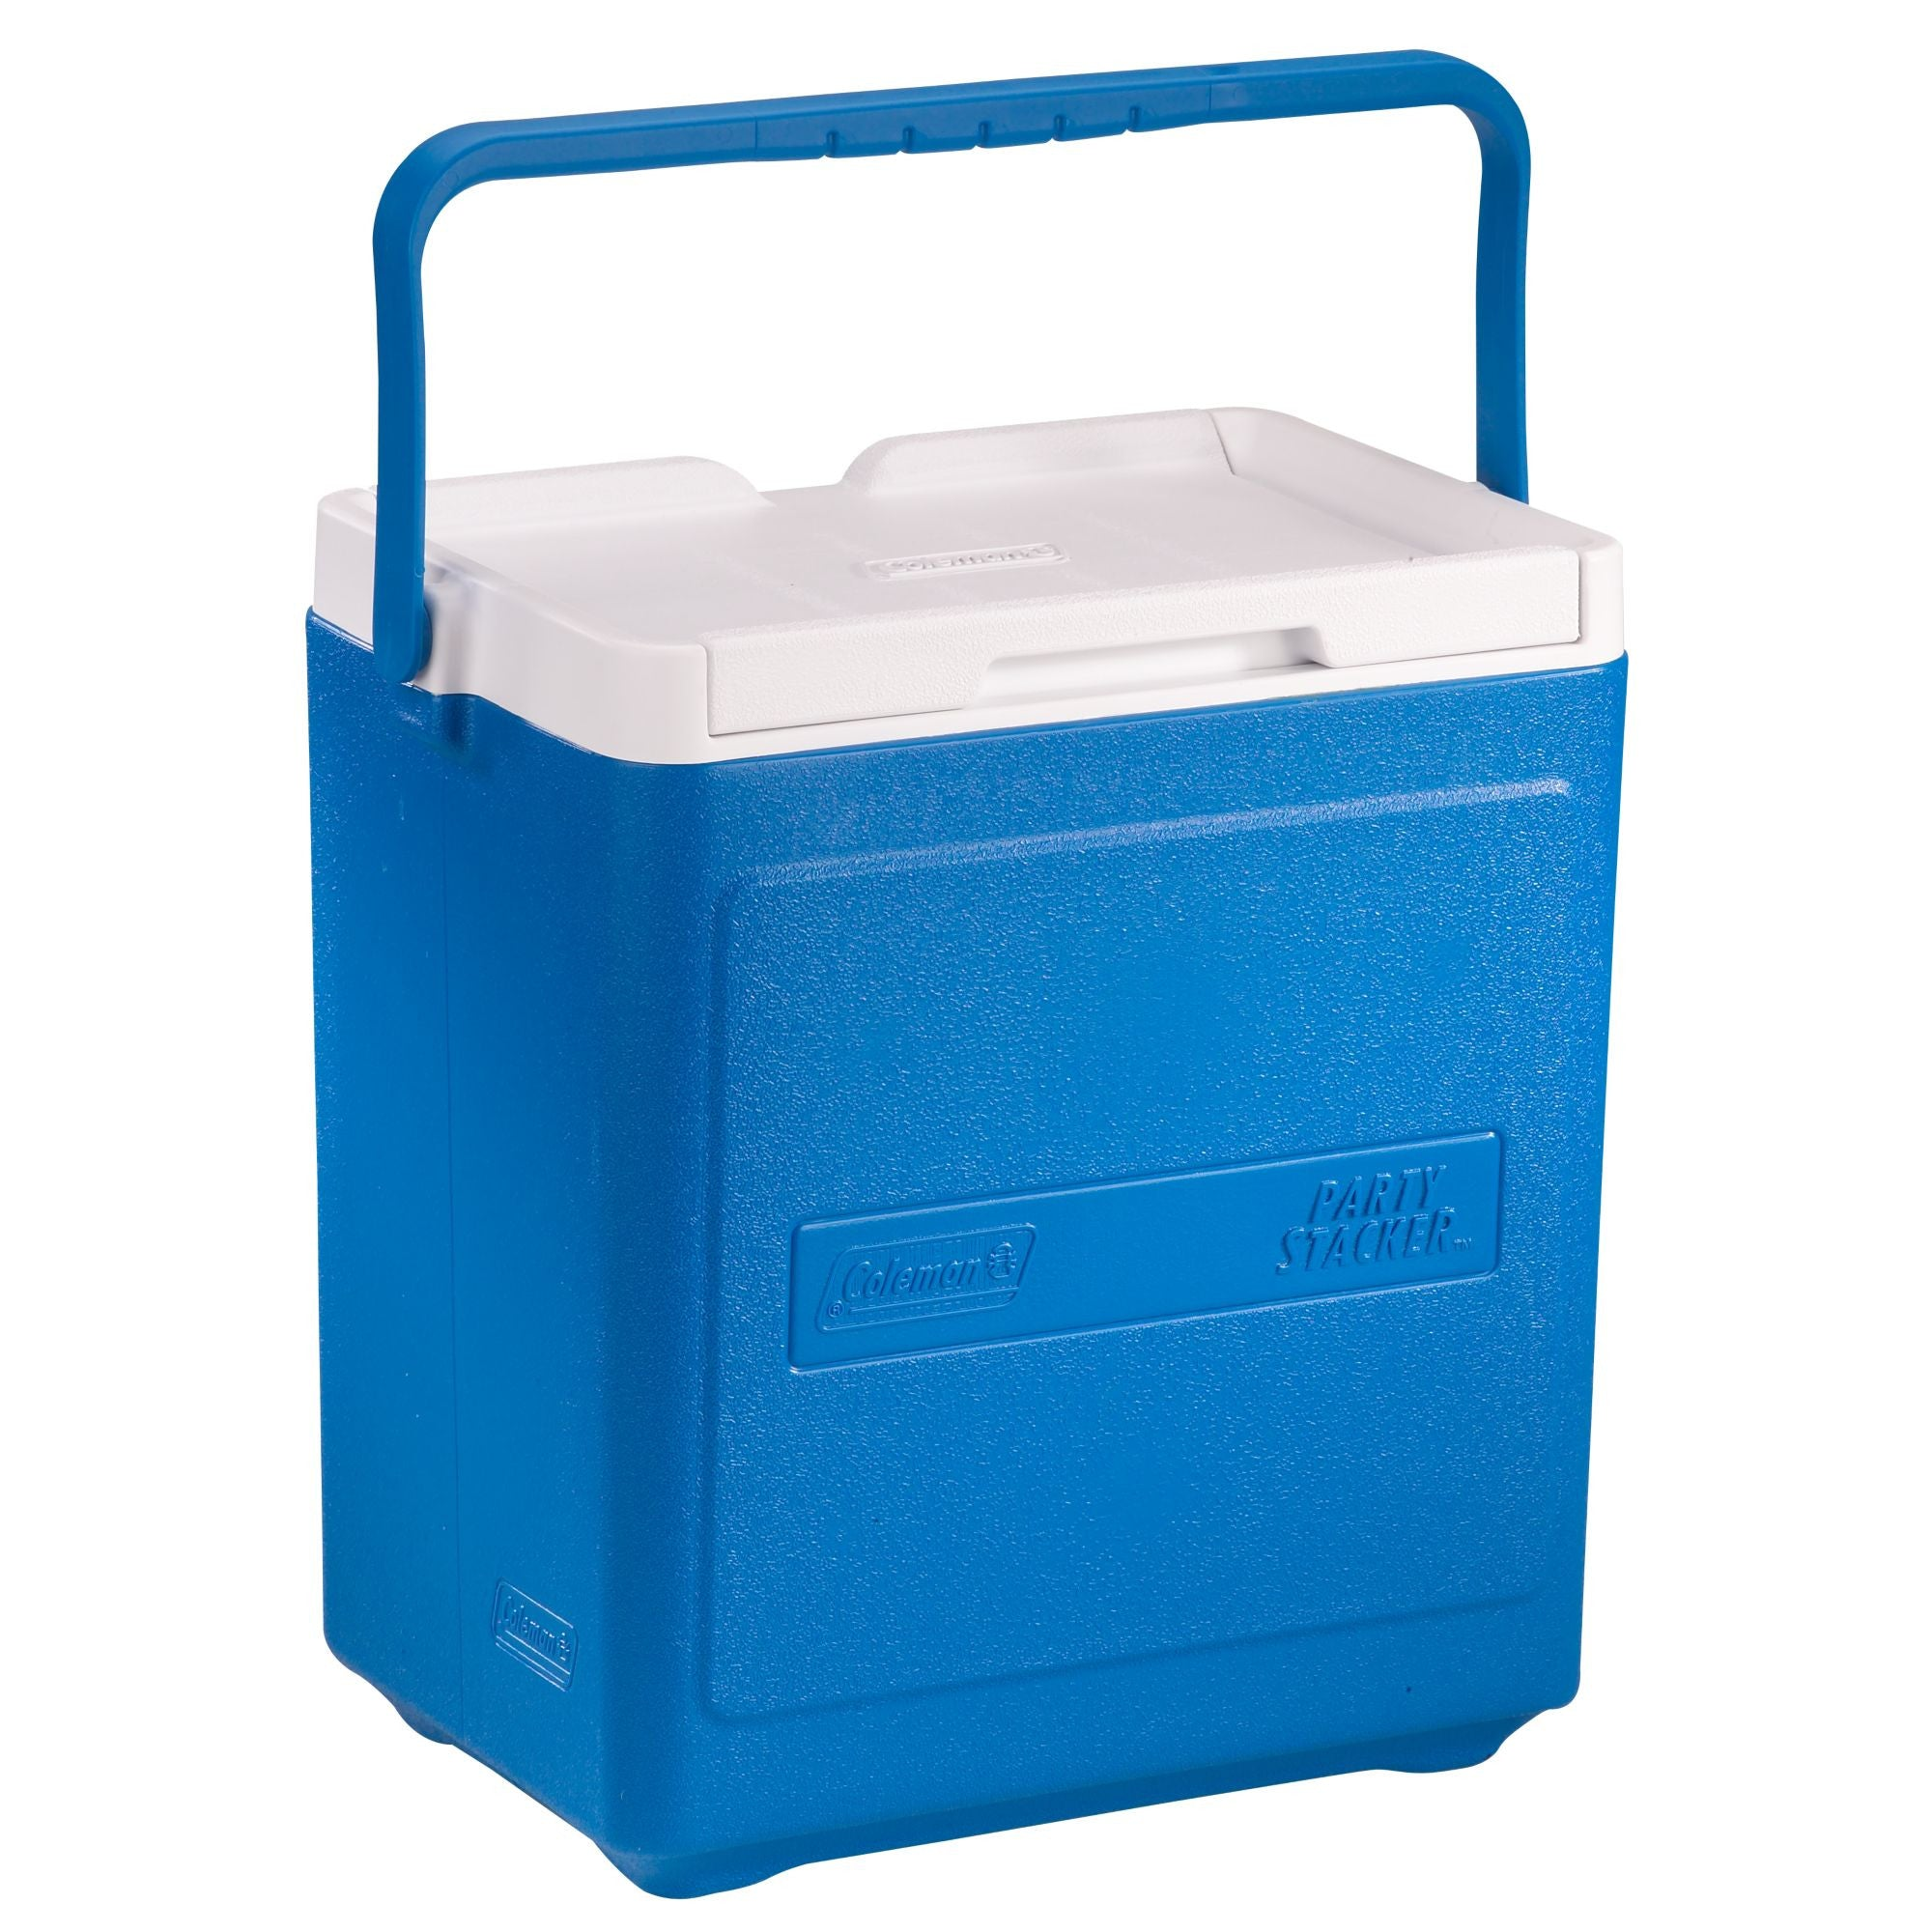 Coleman Liters 20 Cans Party Stacker Cooler (Blue) - Ayudh Sports LLP  - 2